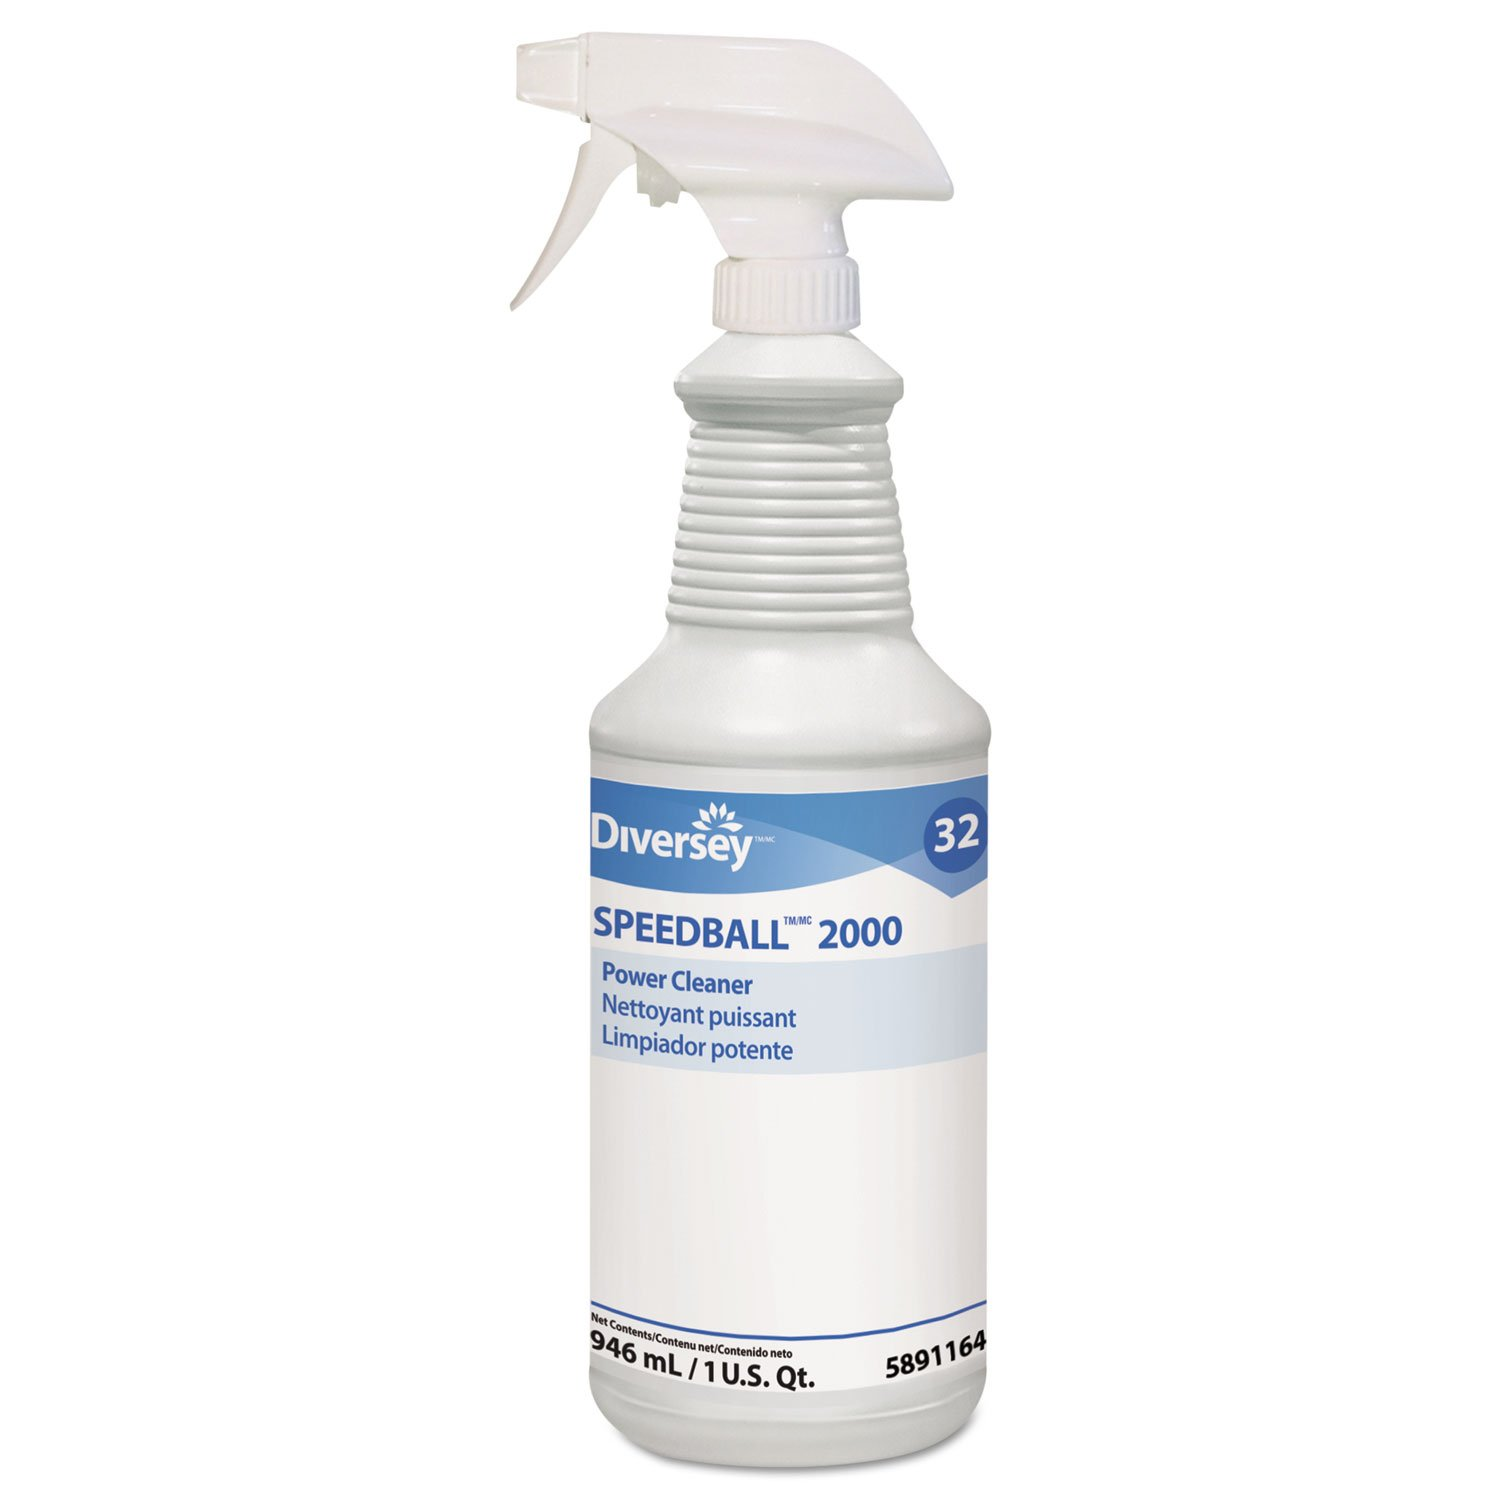 DVO95891164 - Speedball 2000 Heavy-Duty Cleaner